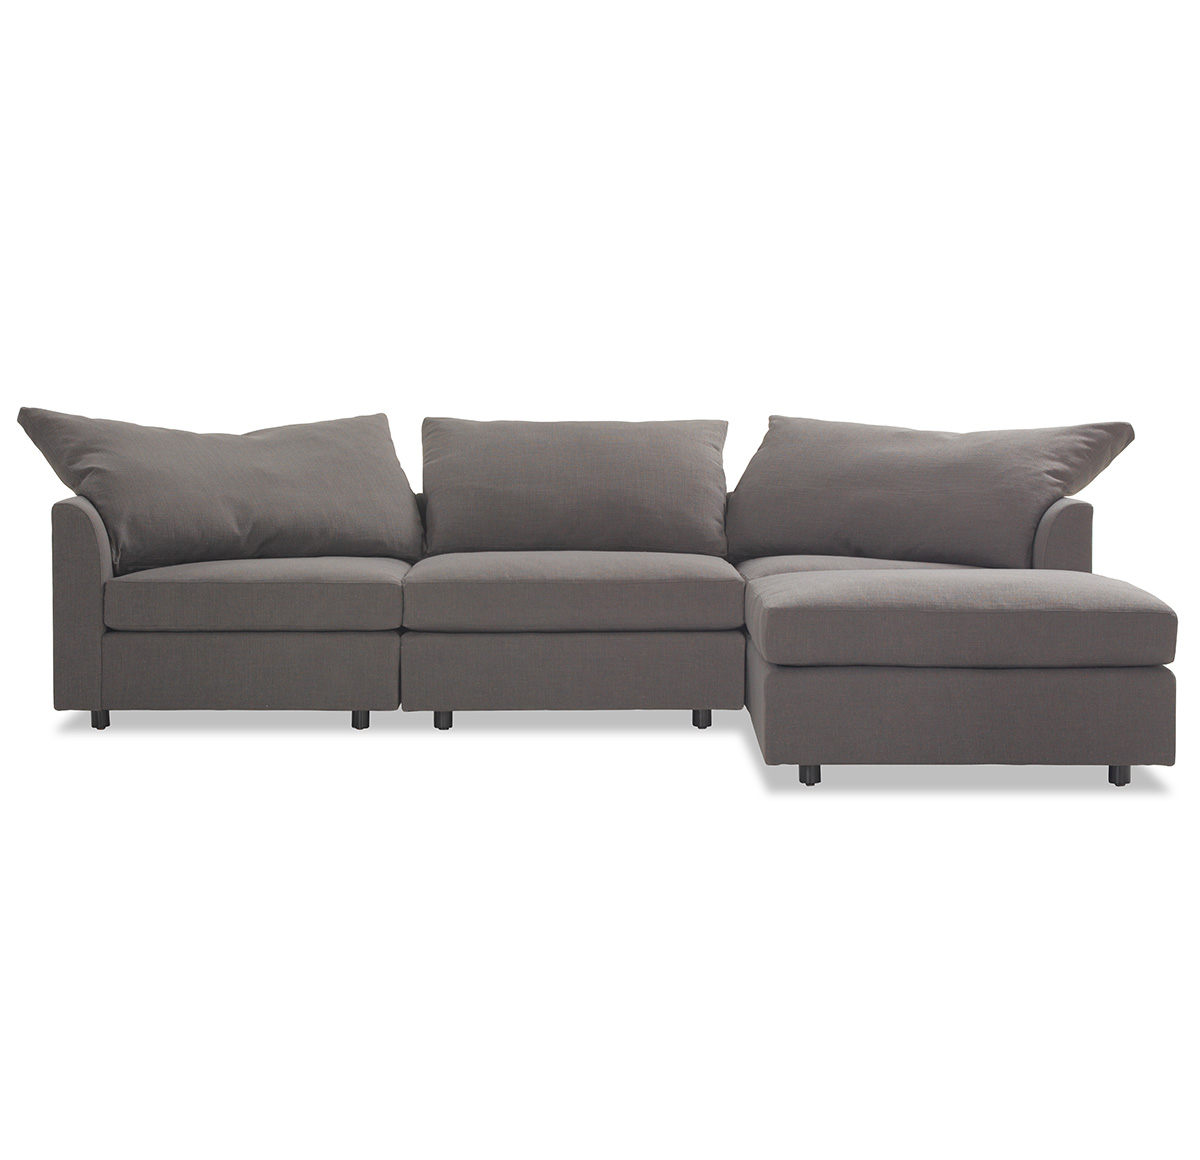 BIG EASY SECTIONALu003cBRu003e[available online and ...  sc 1 st  Pinterest : online sectional - Sectionals, Sofas & Couches